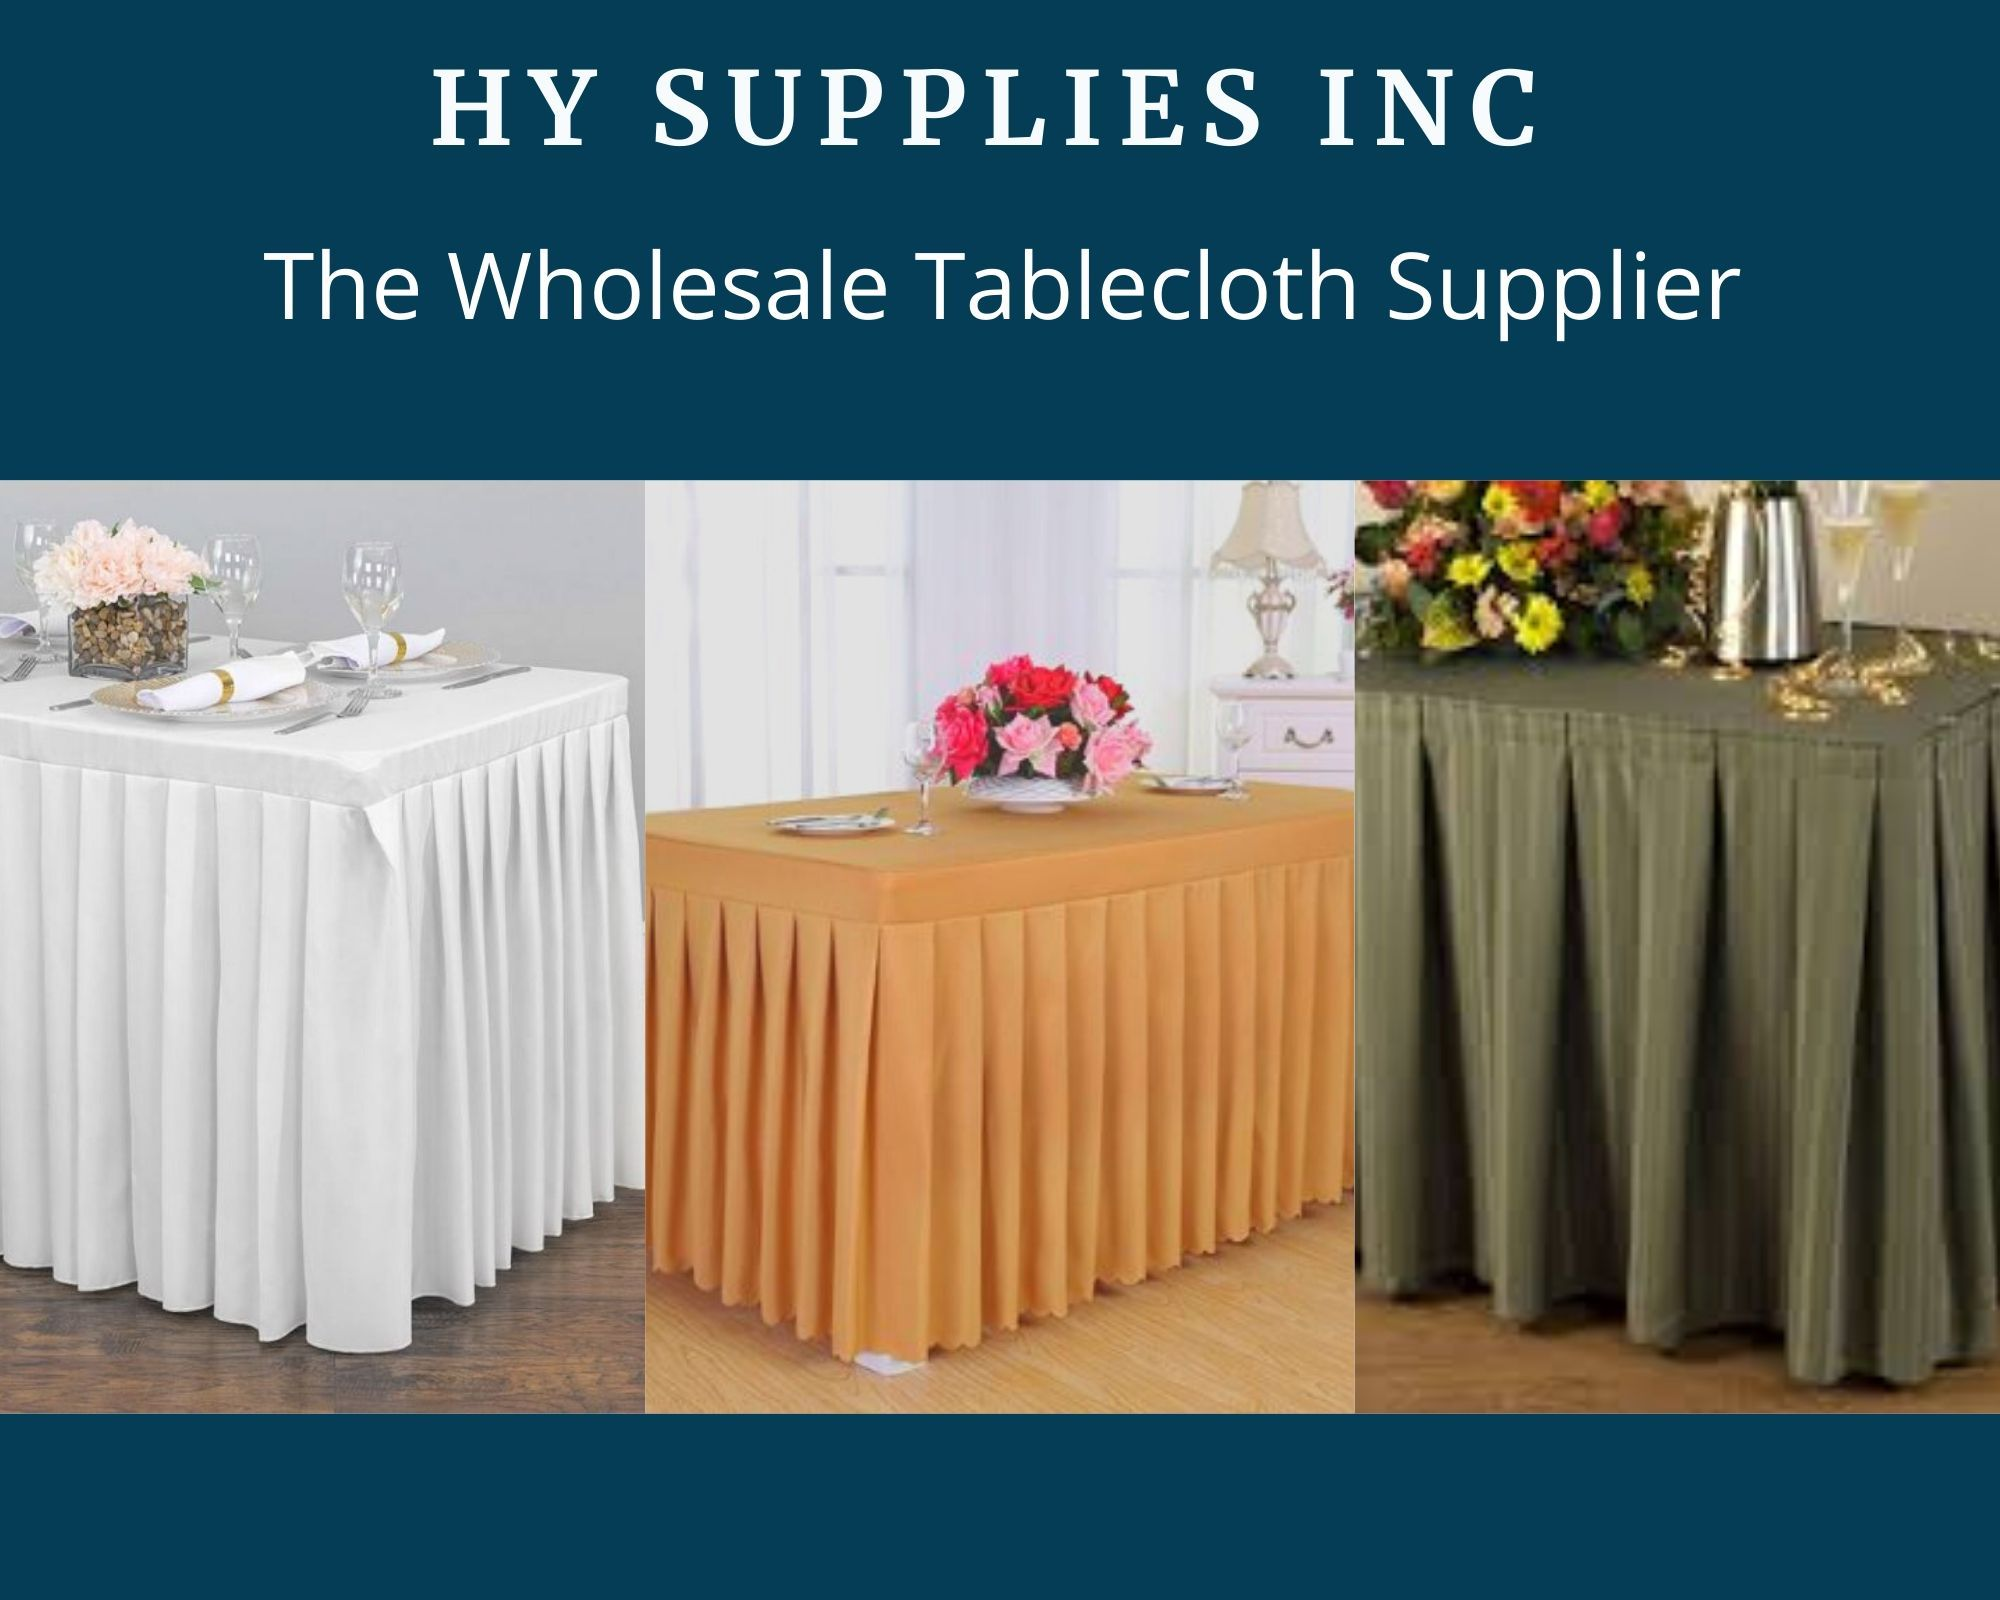 Hy Supplies Inc The Wholesale Tablecloth Supplier Offering